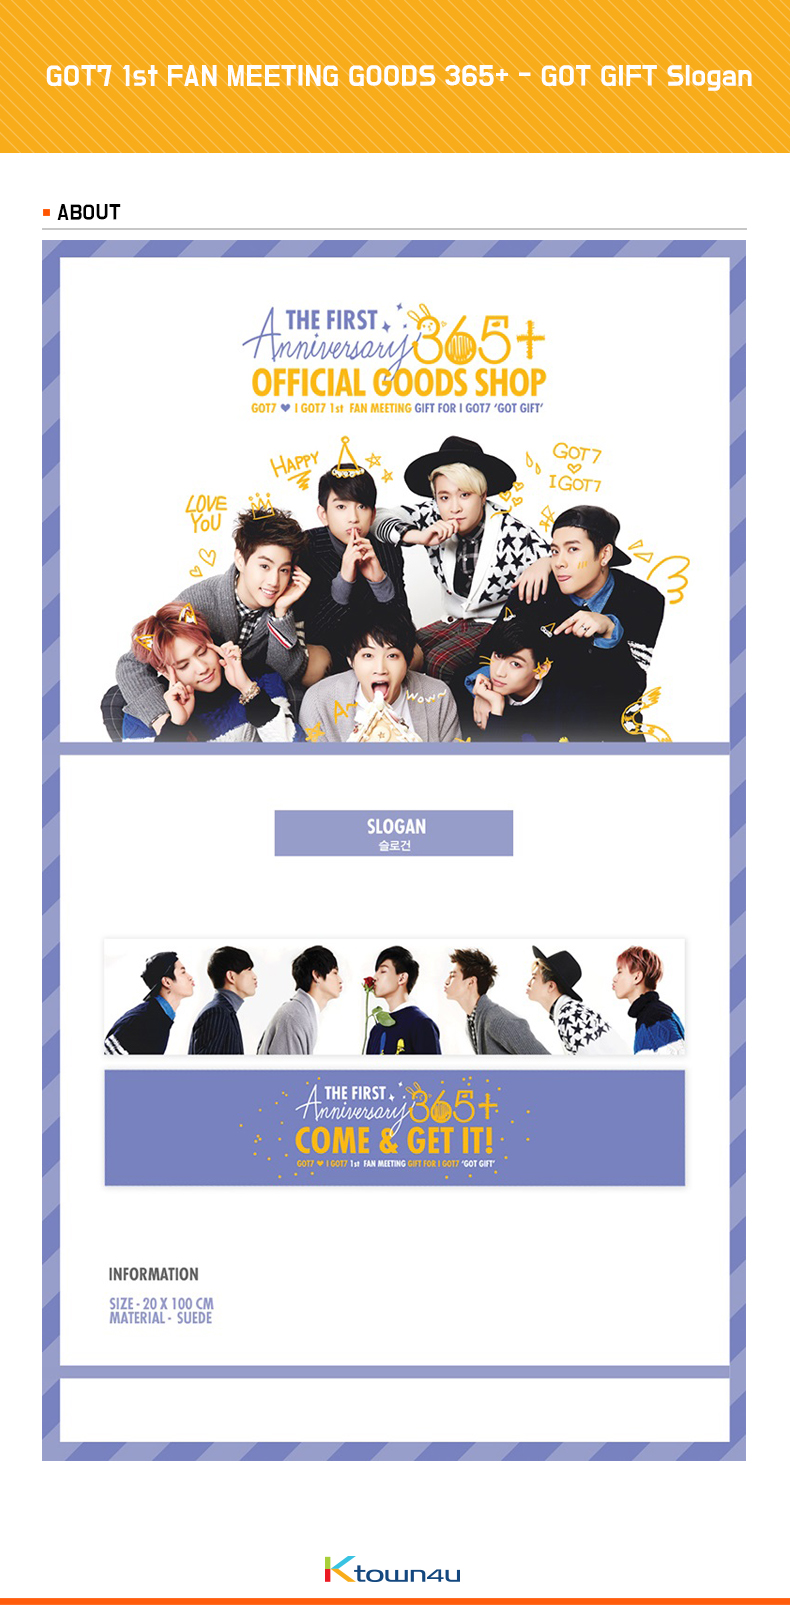 GOT7 1st FAN MEETING GOODS 365+ - GOT GIFT Slogan